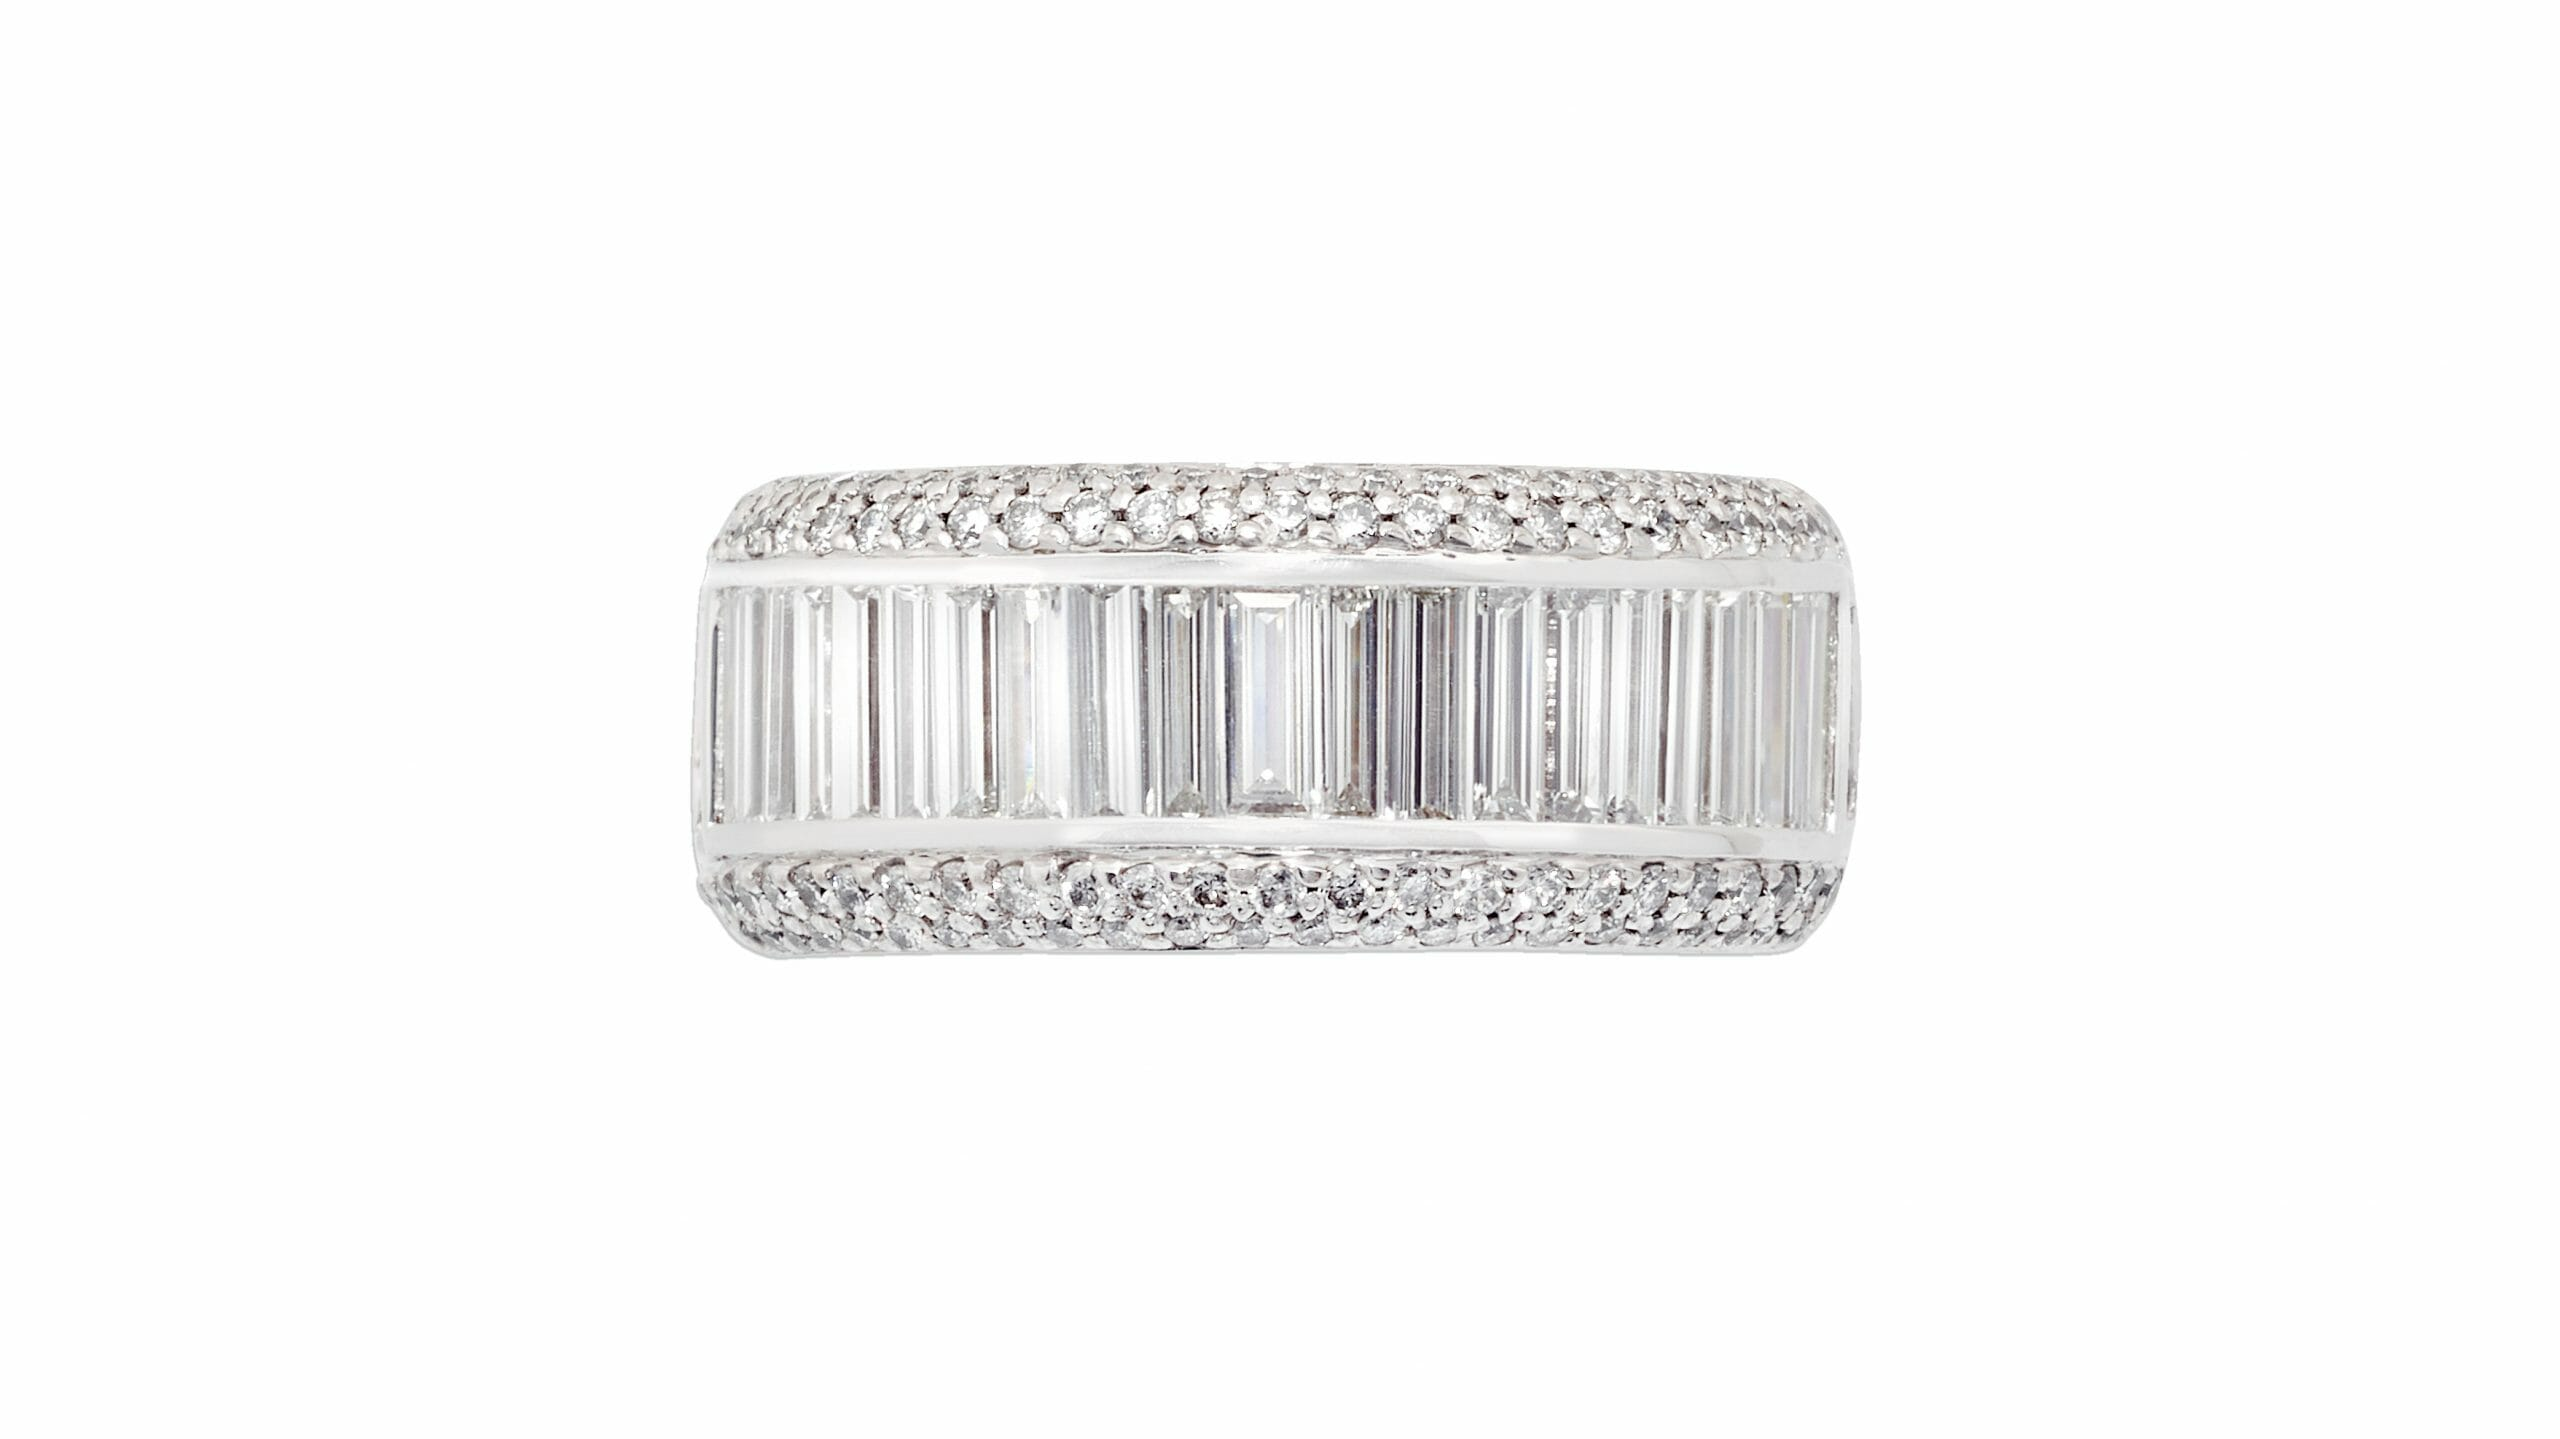 baguette diamond dress ring | 18ct white gold diamond dress ring